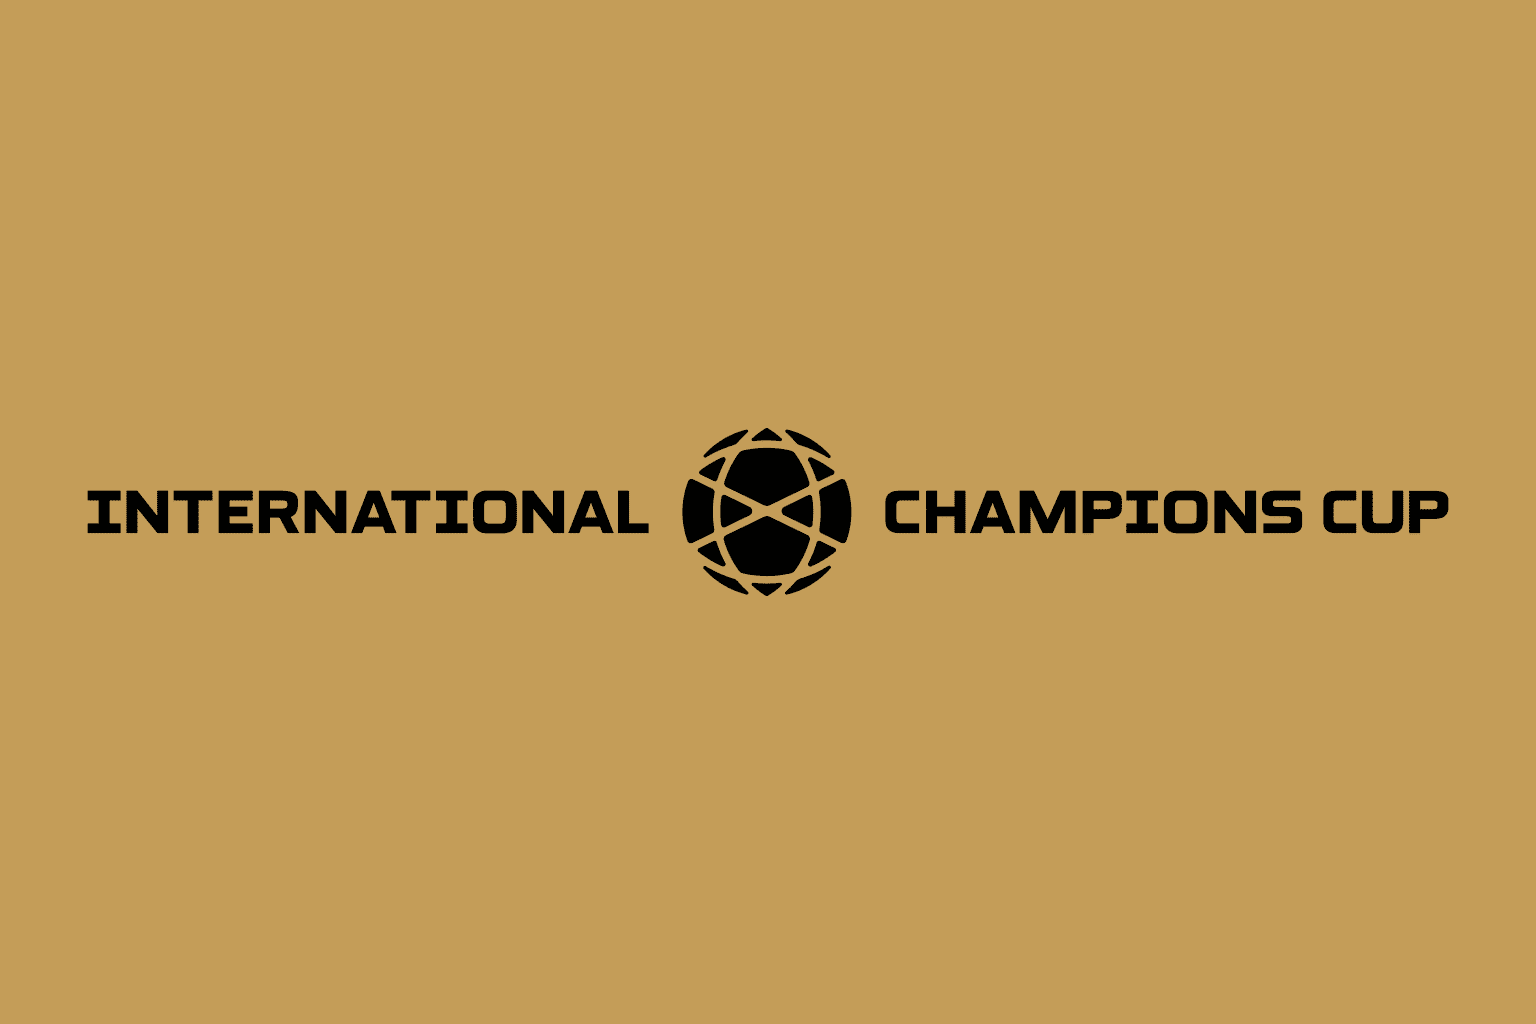 International Champions Cup Typeface